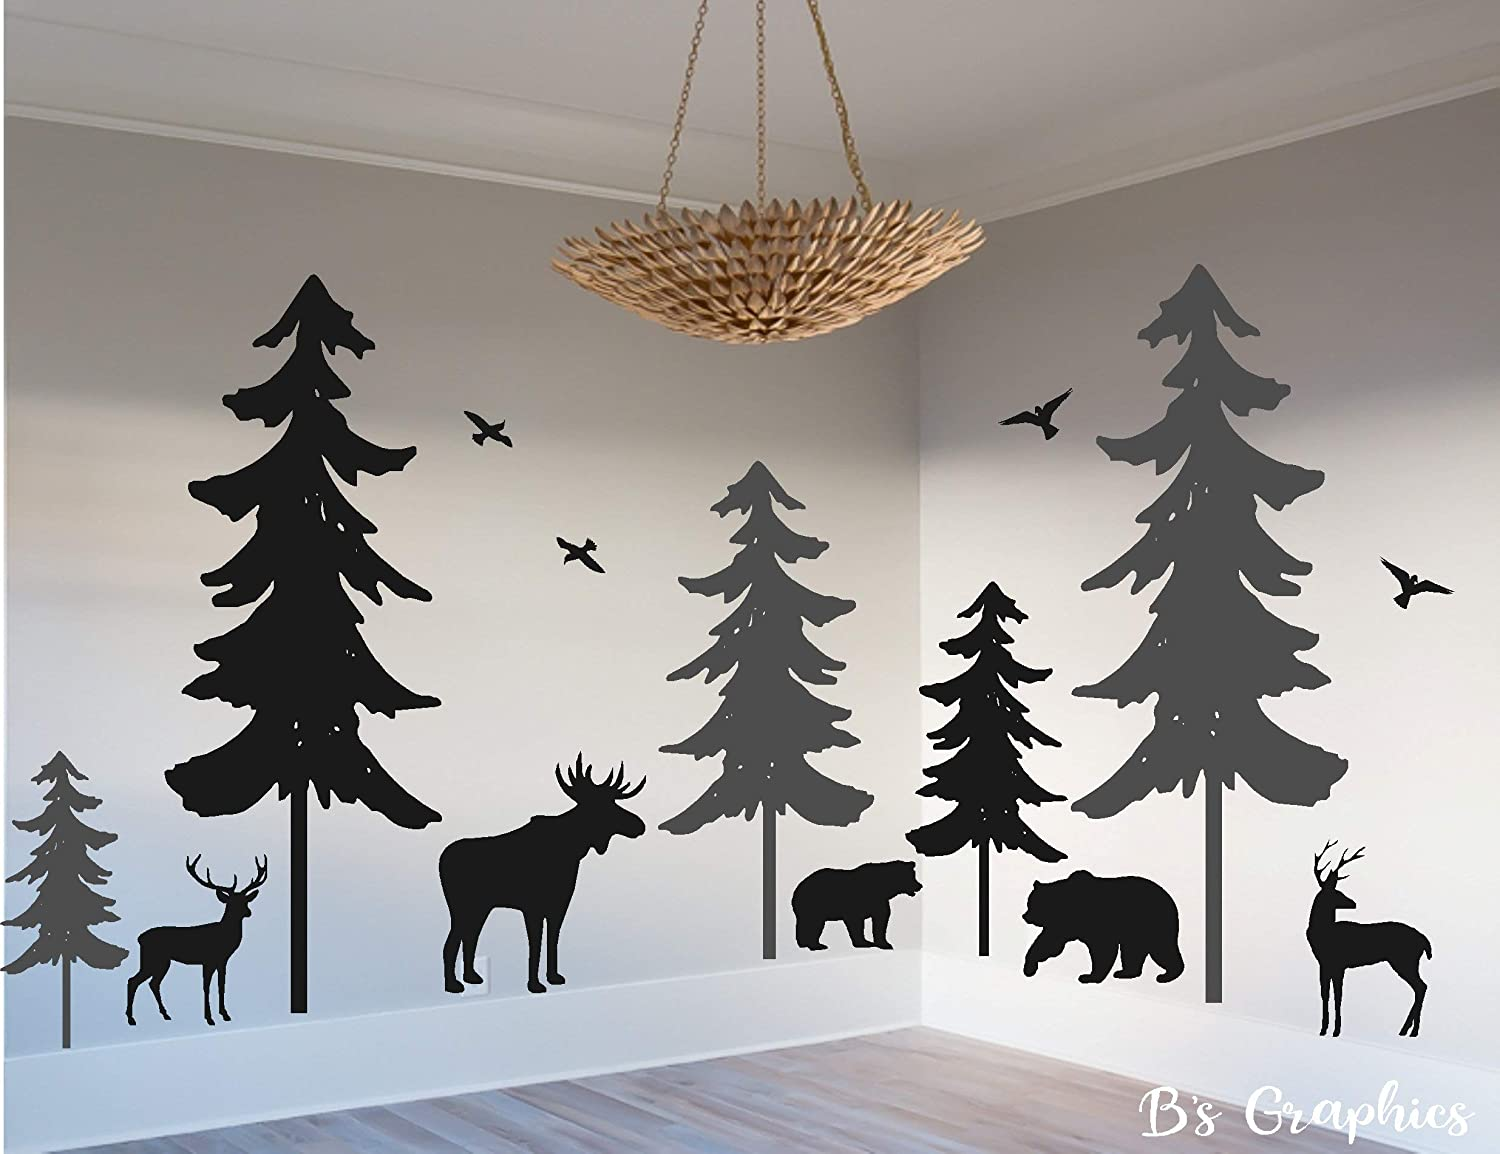 Forest Scene Decals DC01236 Woodland Wall Decals 6 trees Forest Mural Nursery Wall Decal, Pine Tree Forest Wall Decals